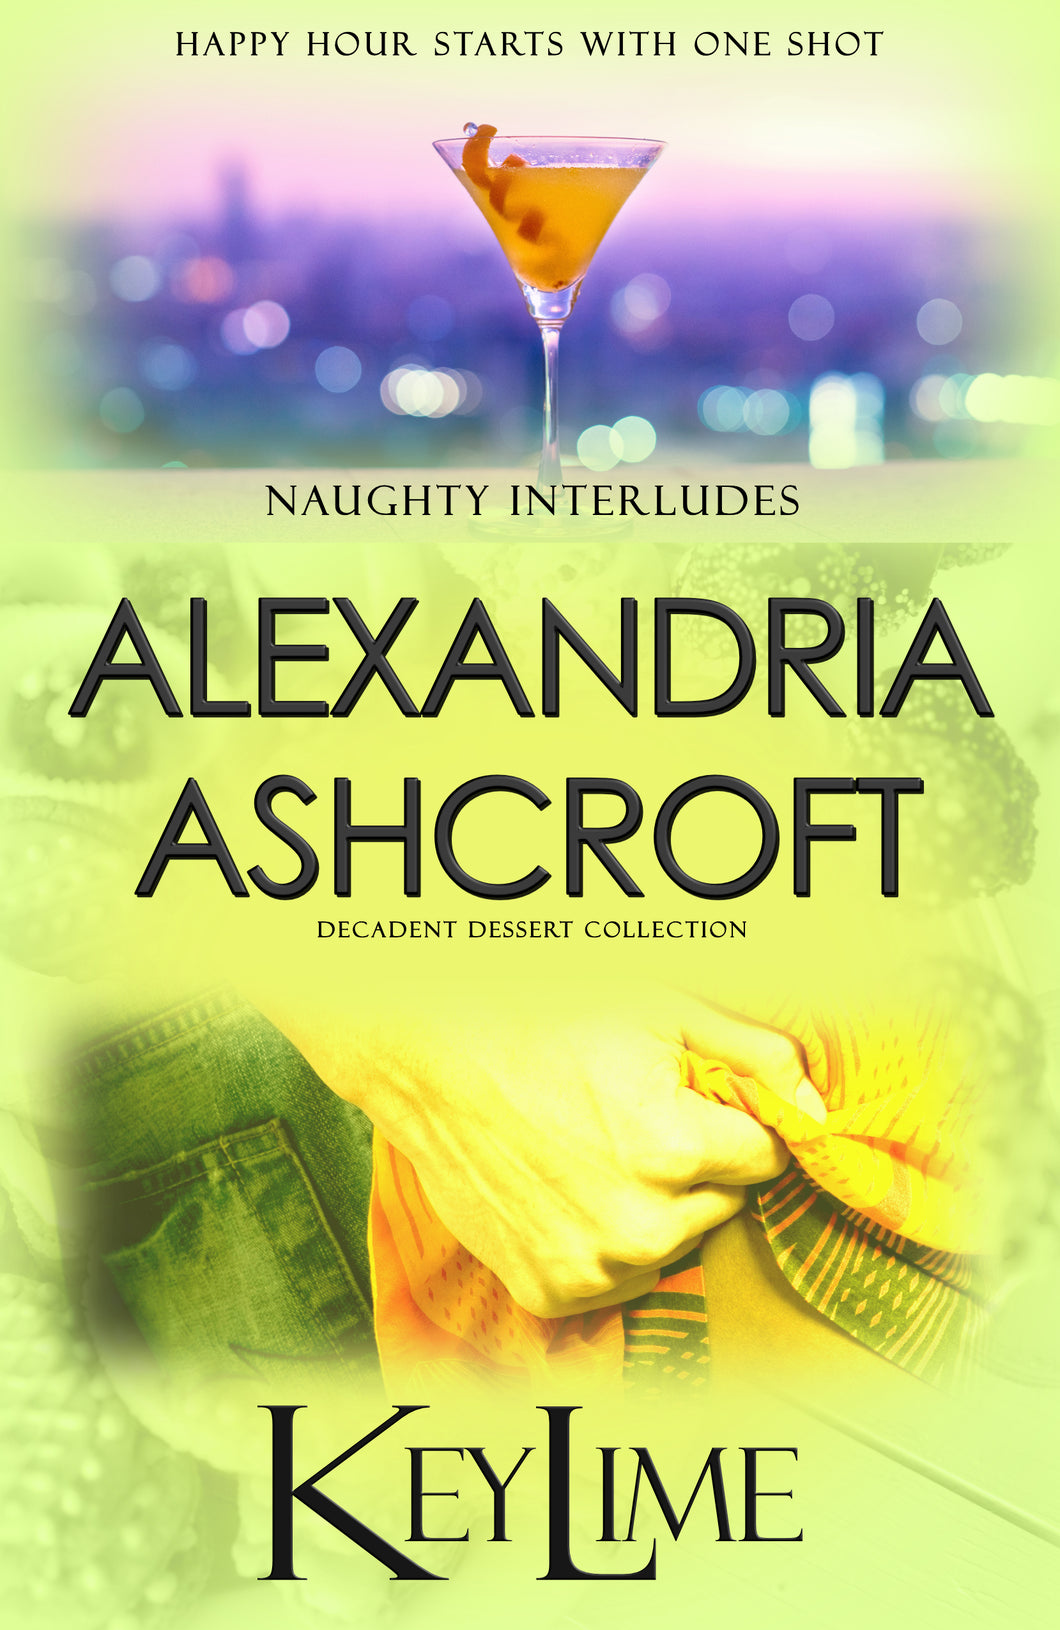 Naughty Interludes: (Decadent Dessert Collection) Key Lime